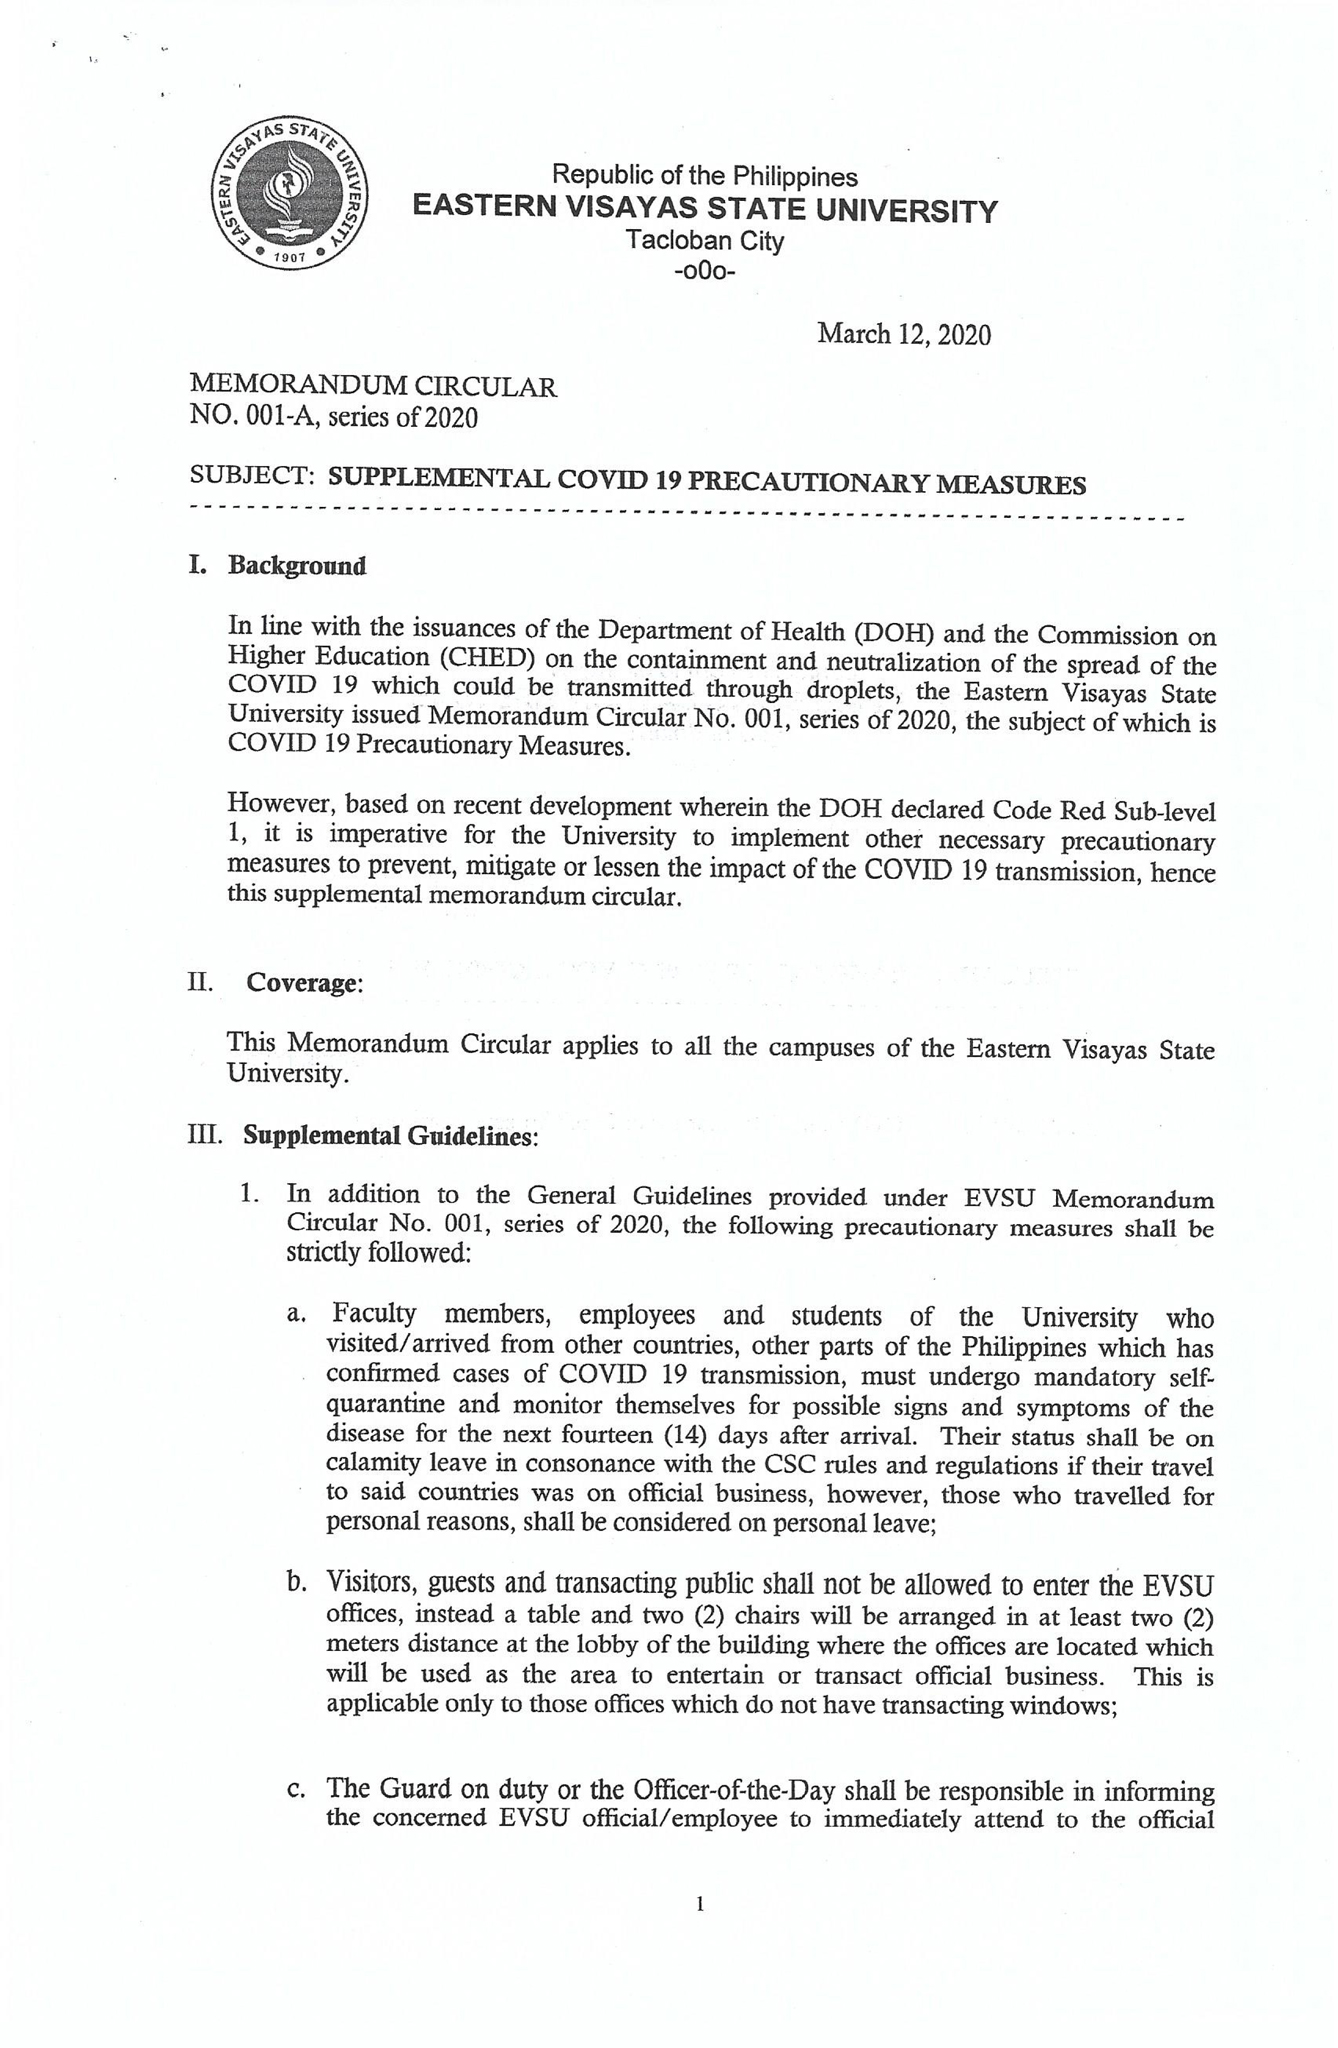 Memorandum Circular No. 001-A, S. 2020 (Supplemental COVID-19 Precautionary Measures)